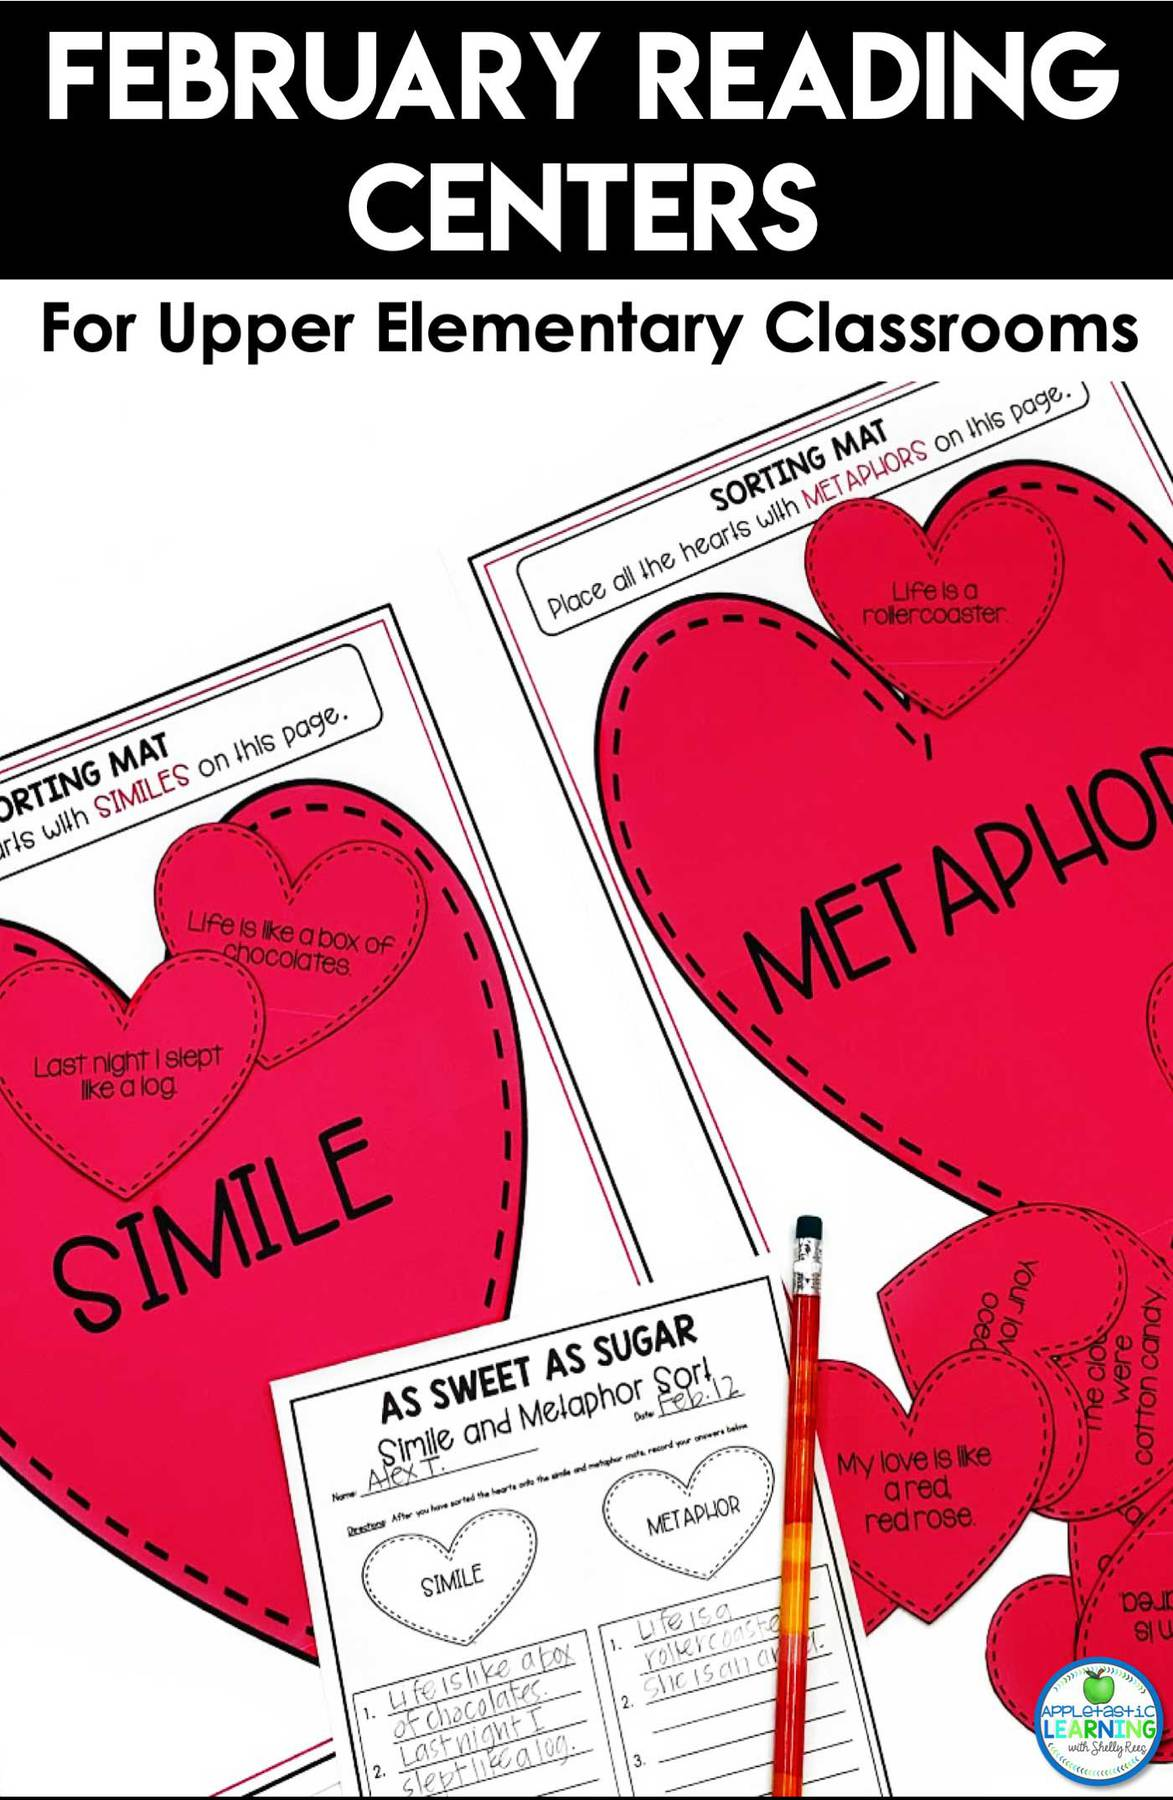 February reading activities for 3rd, 4th and 5th grade students and language arts skills